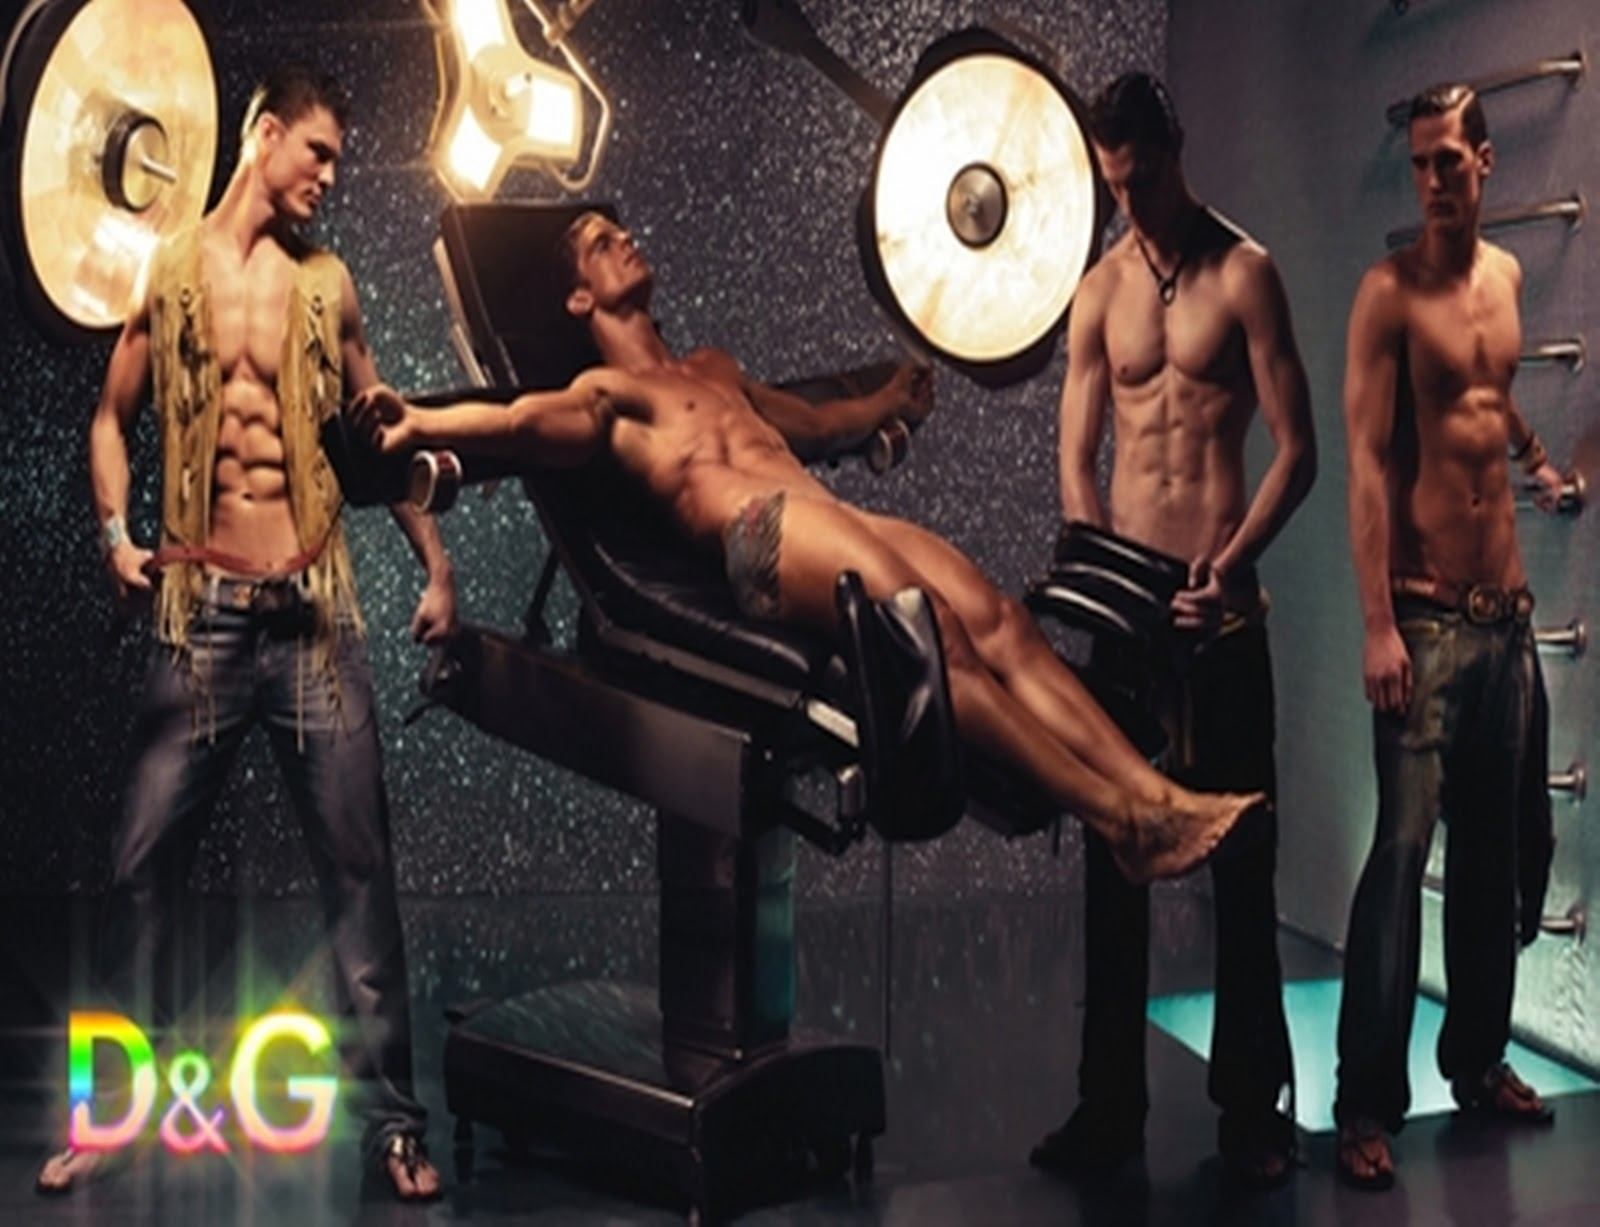 dolce and gabbana gay commercial